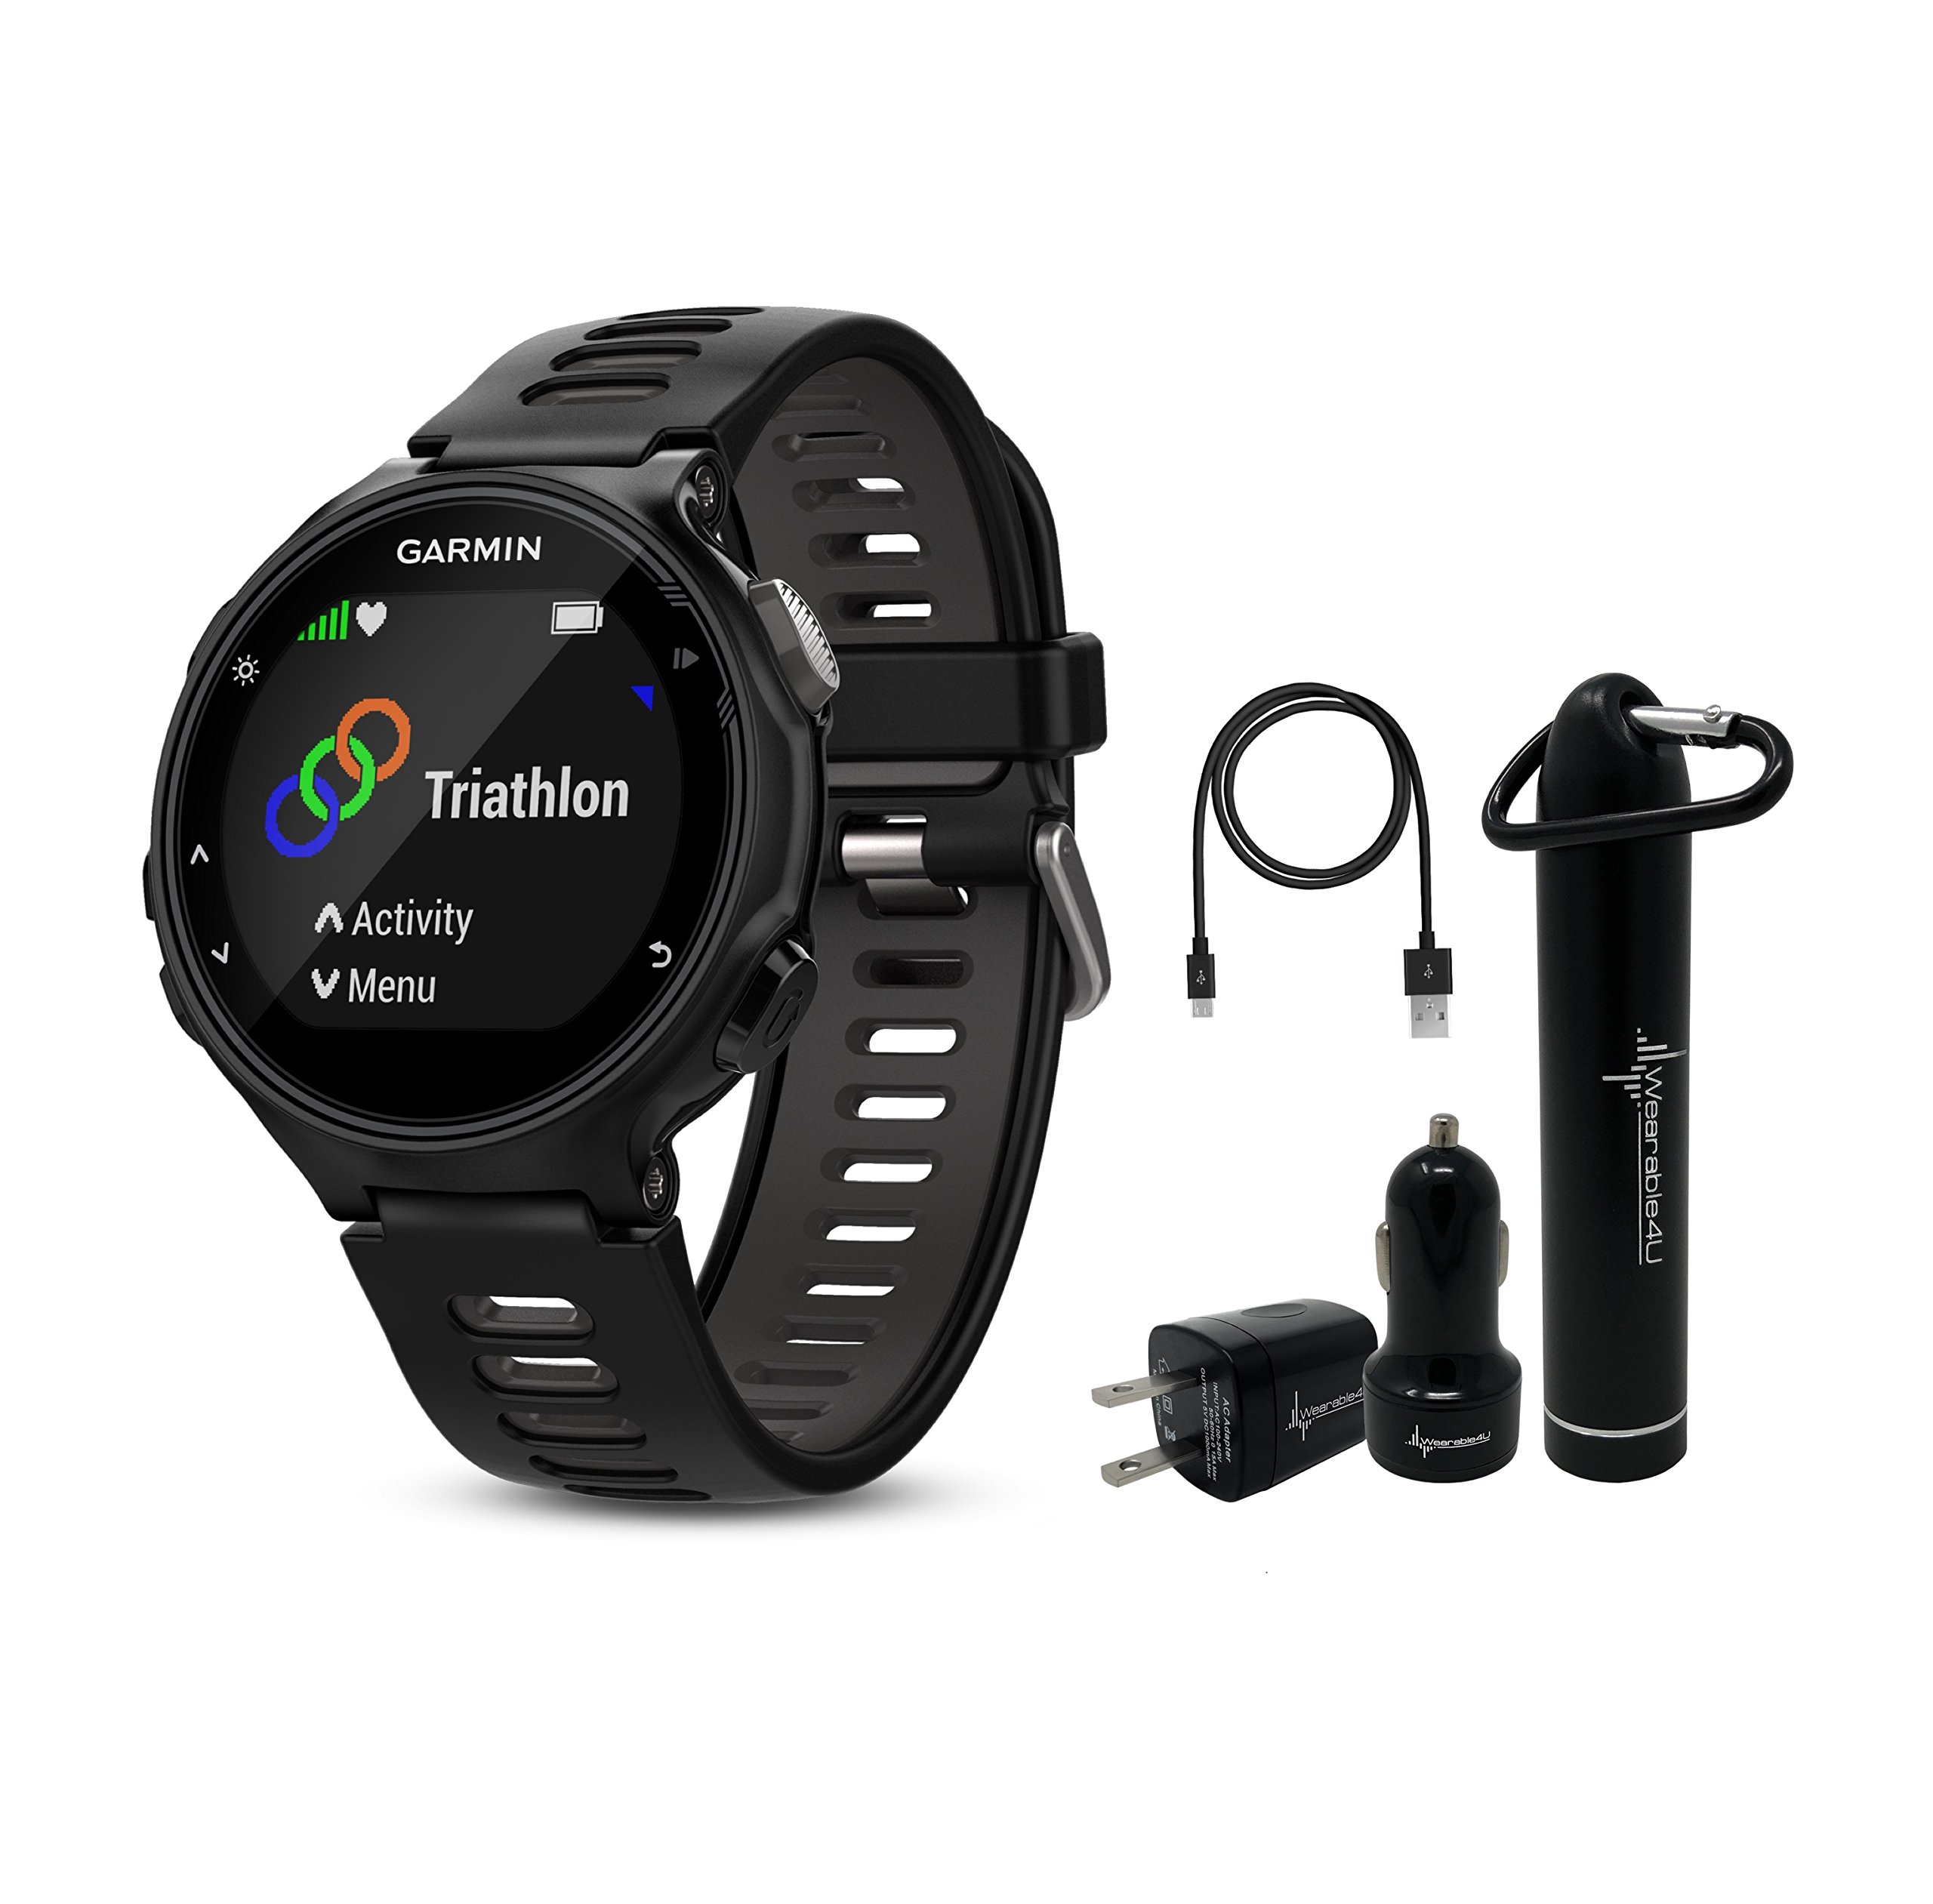 Garmin Forerunner 735XT GPS Running Watch with Multisport Features and Wrist-based Heart Rate and Wearable4U Ultimate Power Pack Bundle (Watch Only, Black/Gray)